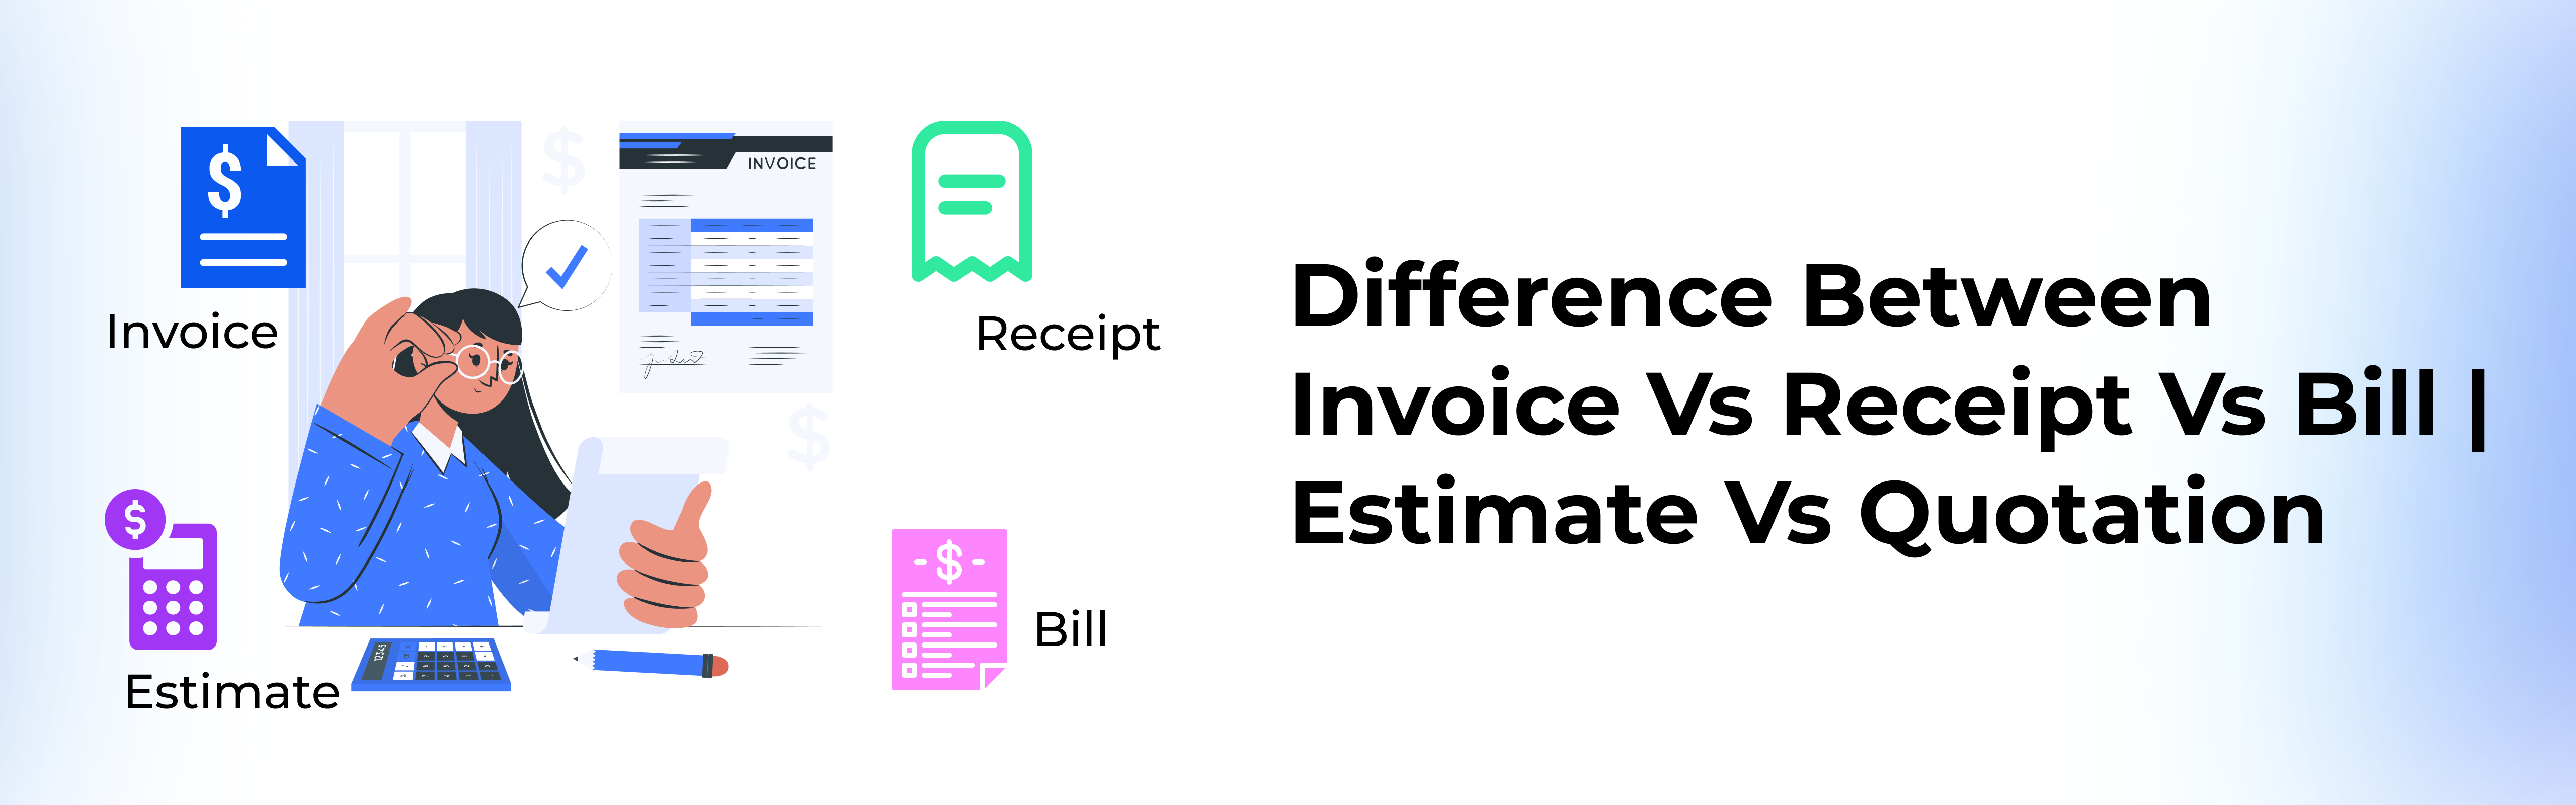 difference-between-invoice-receipt-bill-and-estimate-and-quote